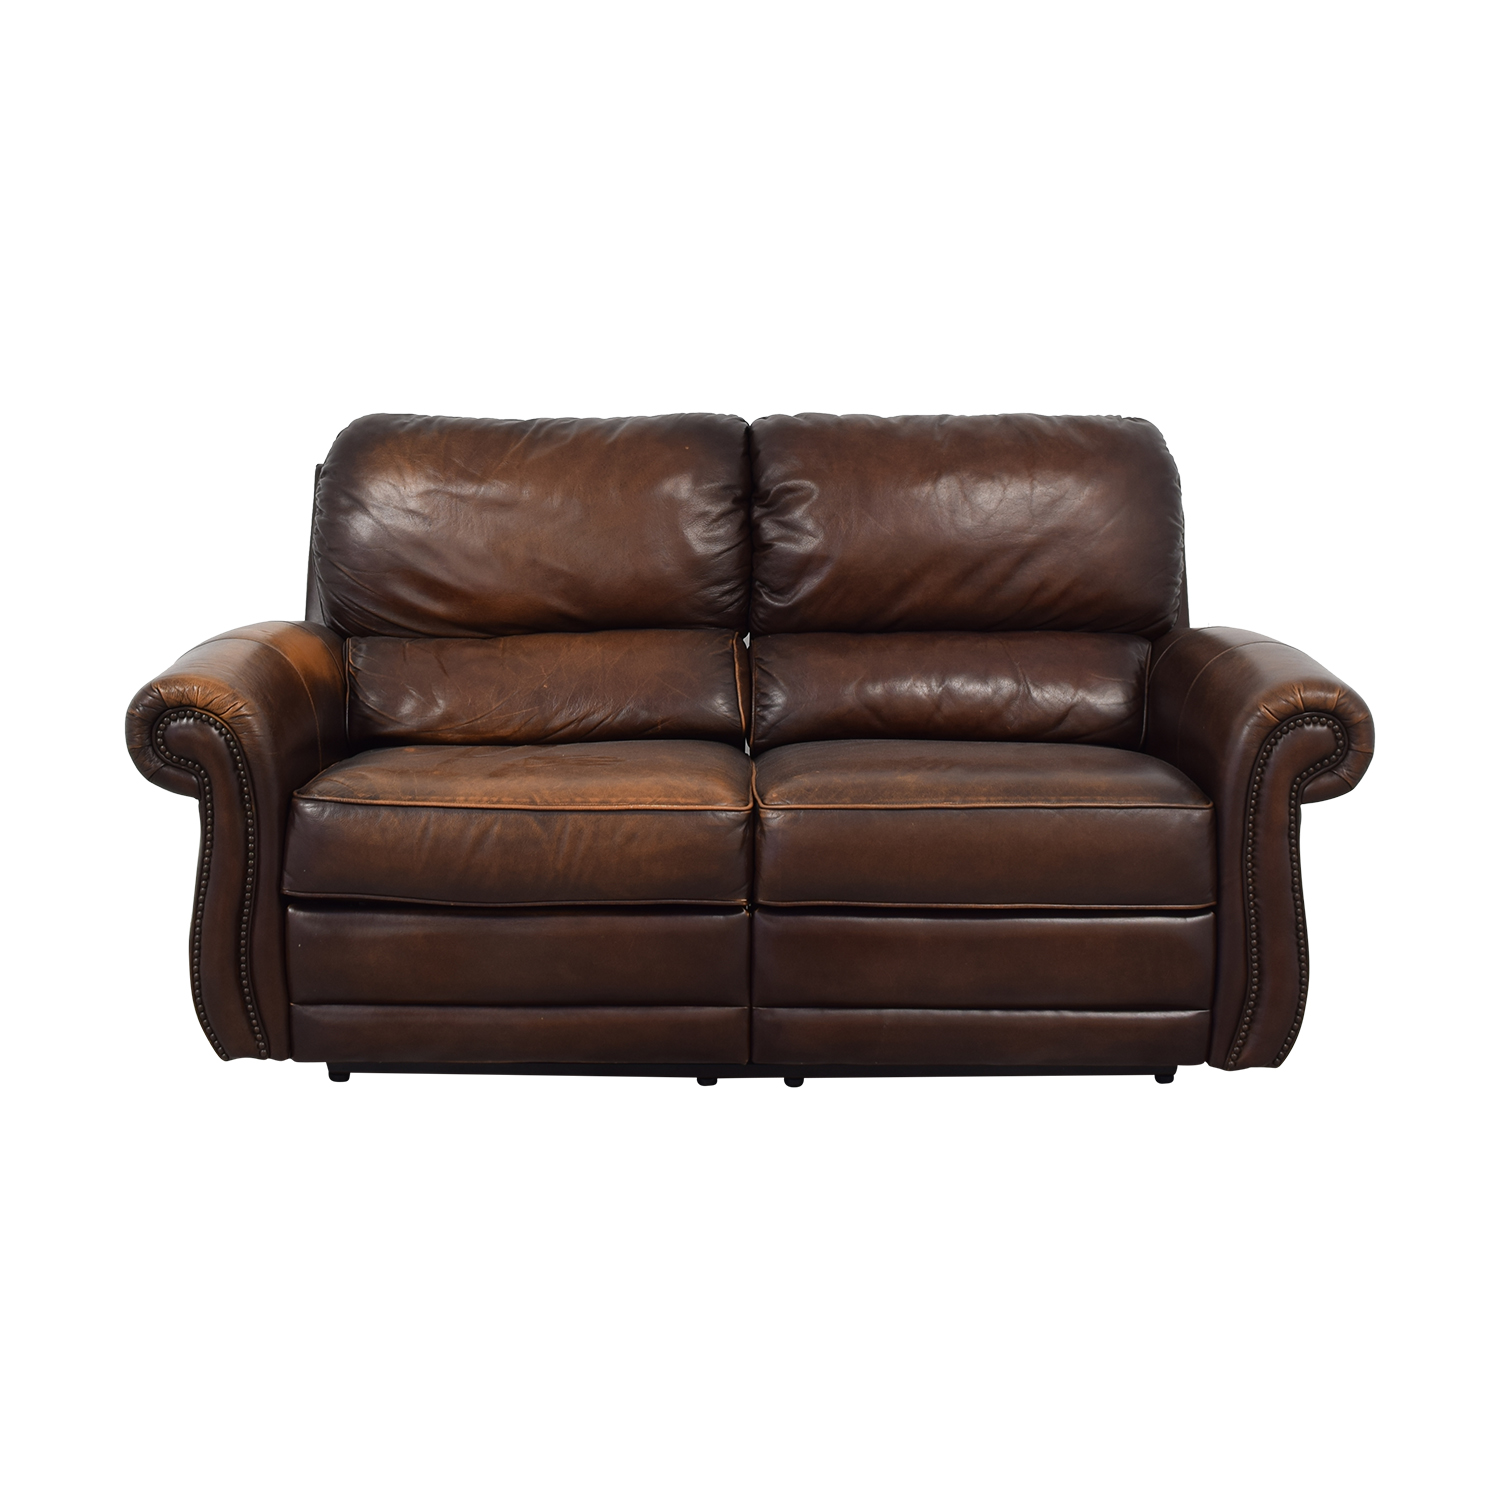 Raymour & Flanigan Raymour & Flanigan Leather Loveseat Recliner discount